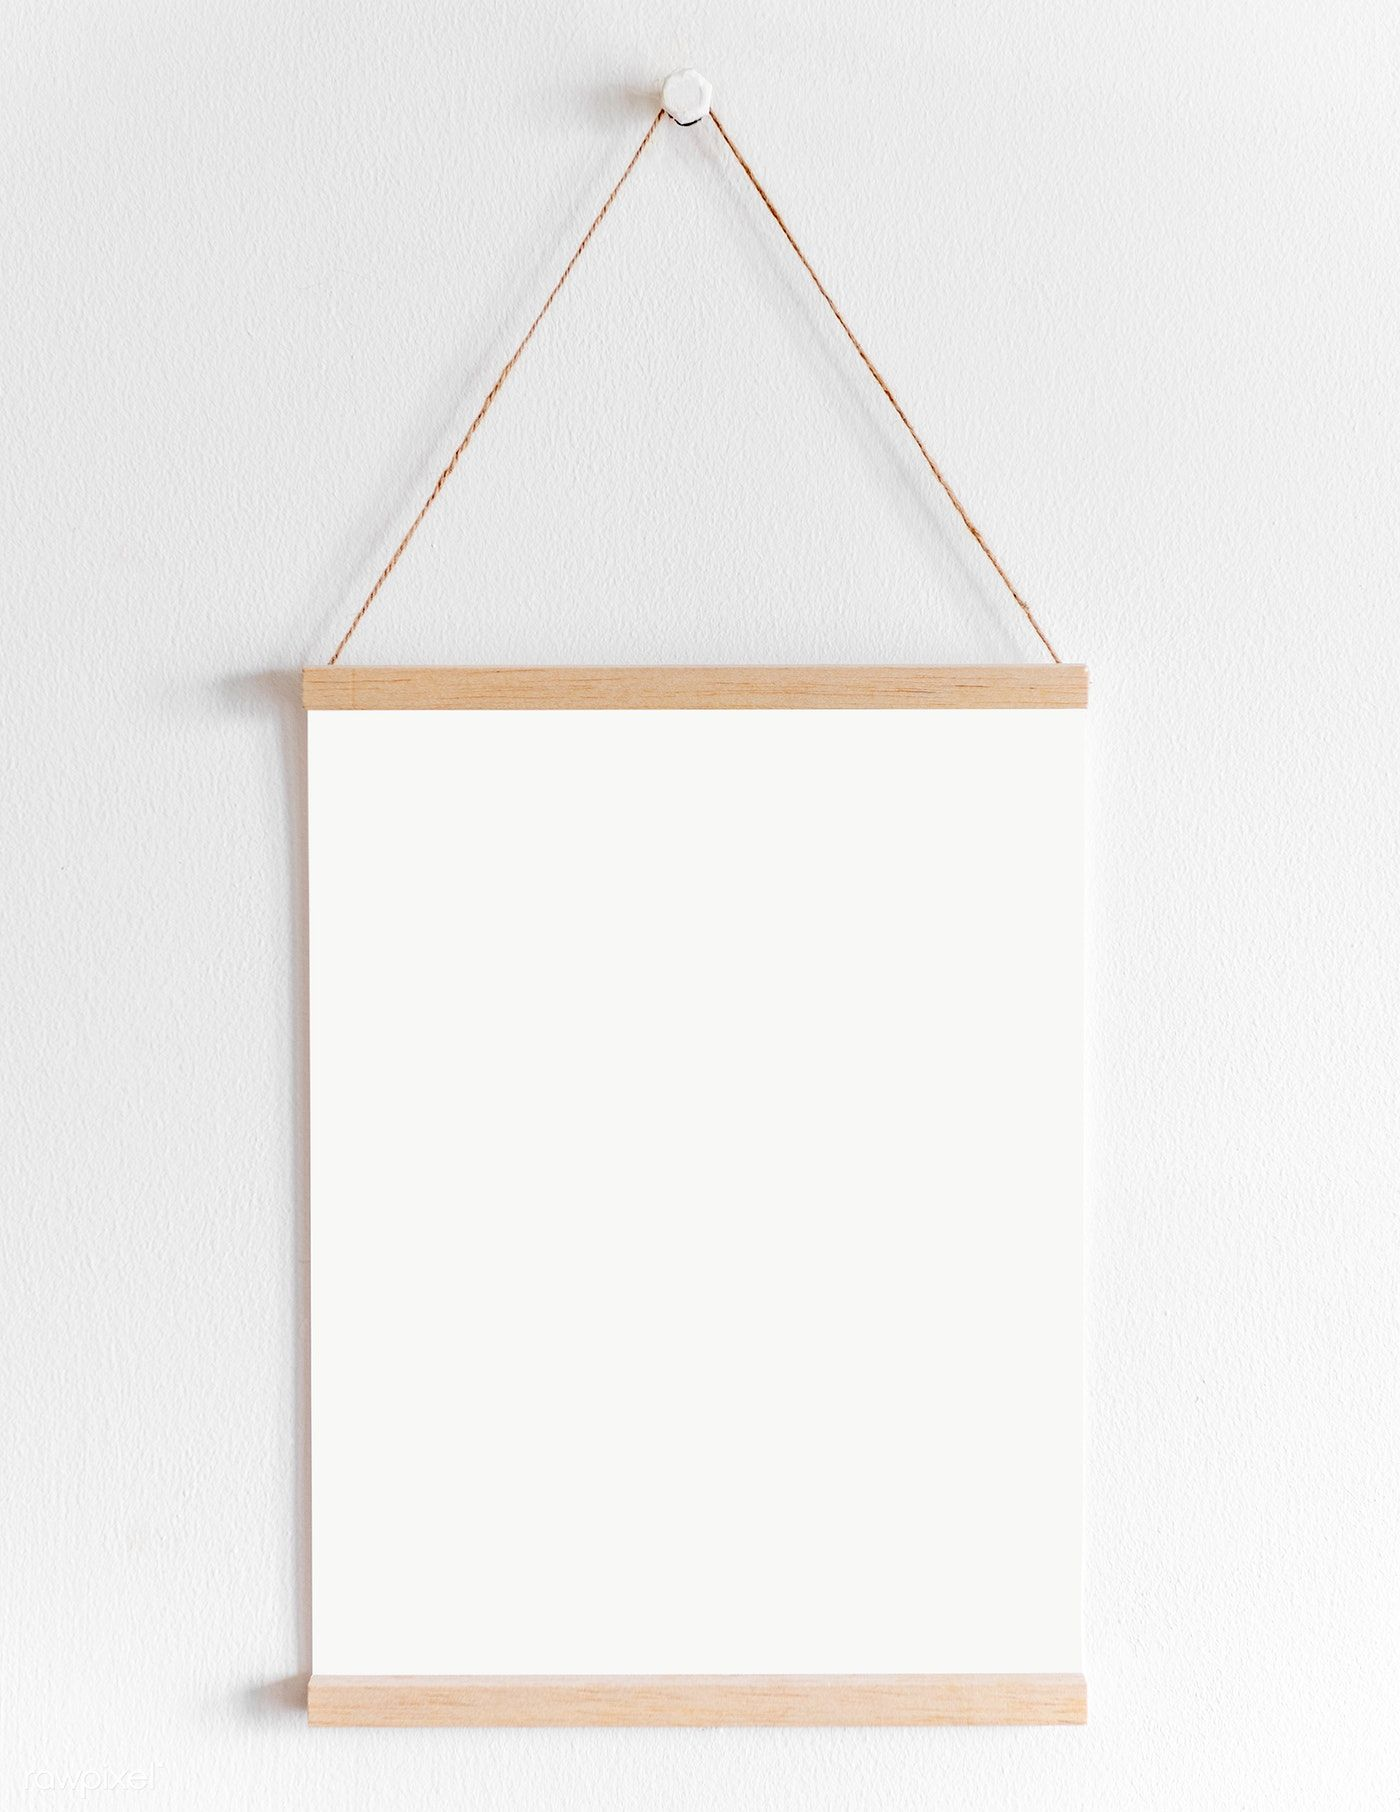 Blank Poster Mockup Transparent Png Premium Image By Rawpixel Com Ployploy Poster Mockup Blank Poster Photo Frame Design